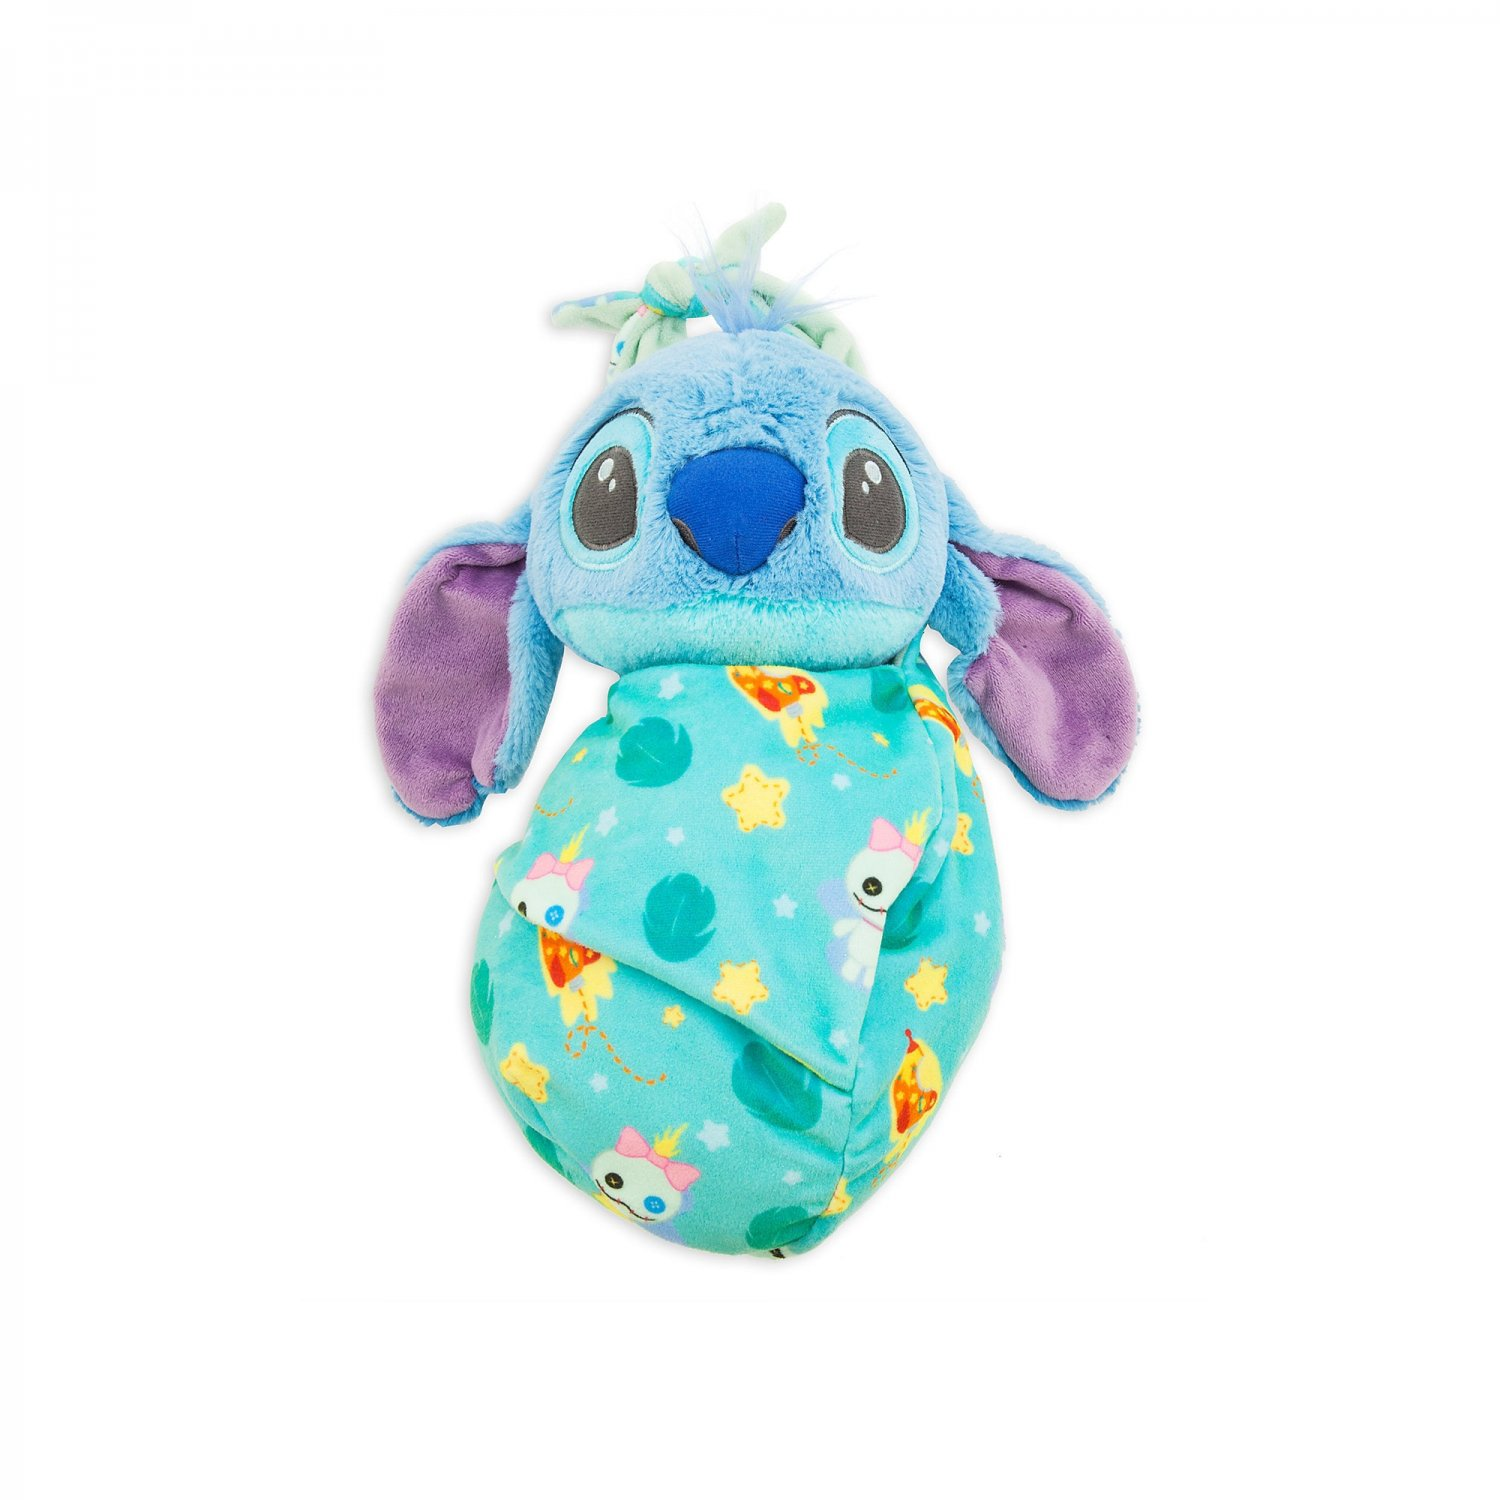 Stitch Plush in Pouch Disney Babies  Small Disney Parks New